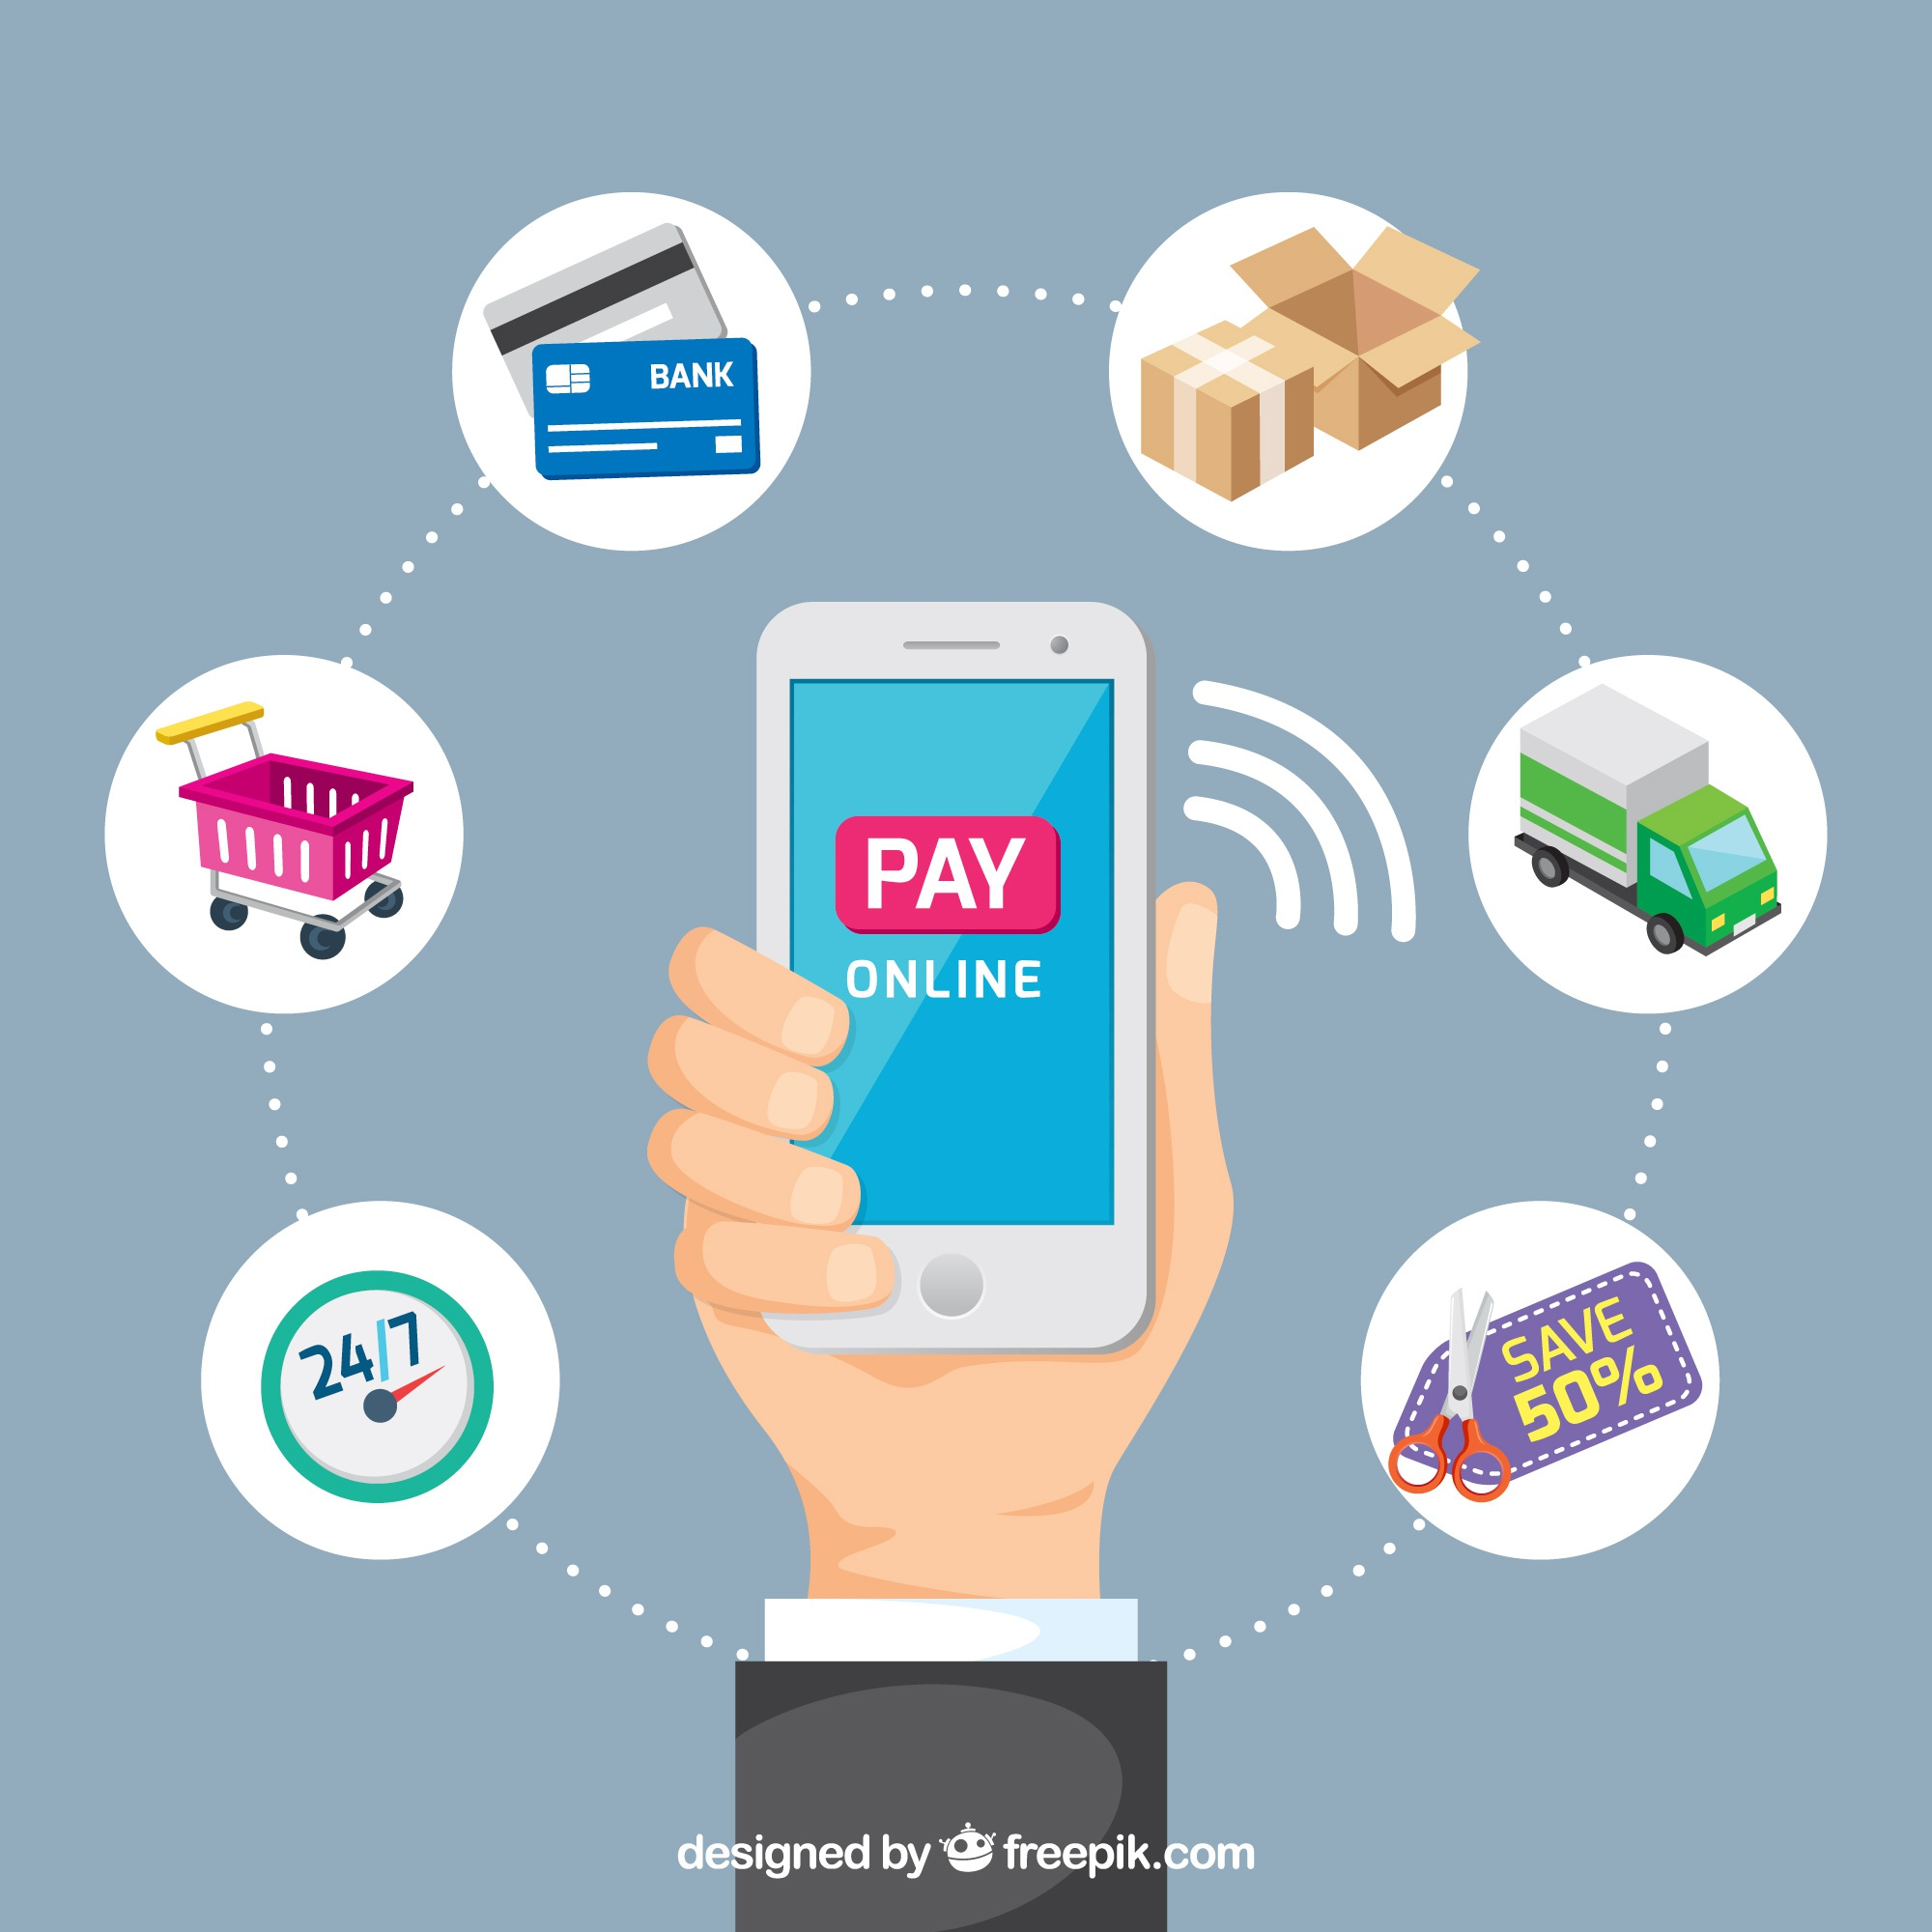 Pay online, mobile phone